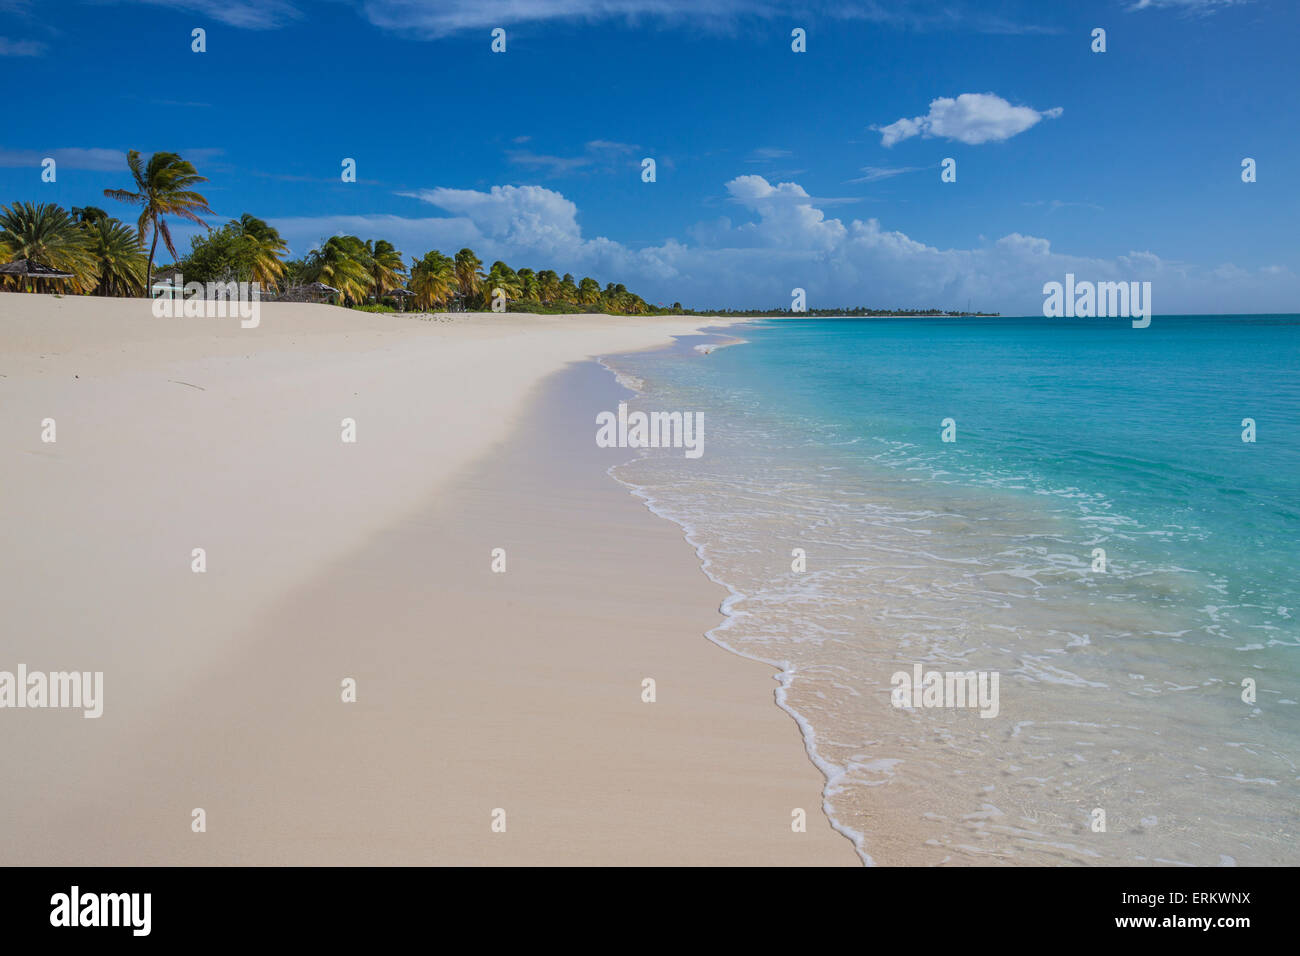 The coconut trees lapping on the beach of K-Club, thin strip of sand overlooking the Caribbean Sea, Barbuda - Stock Image